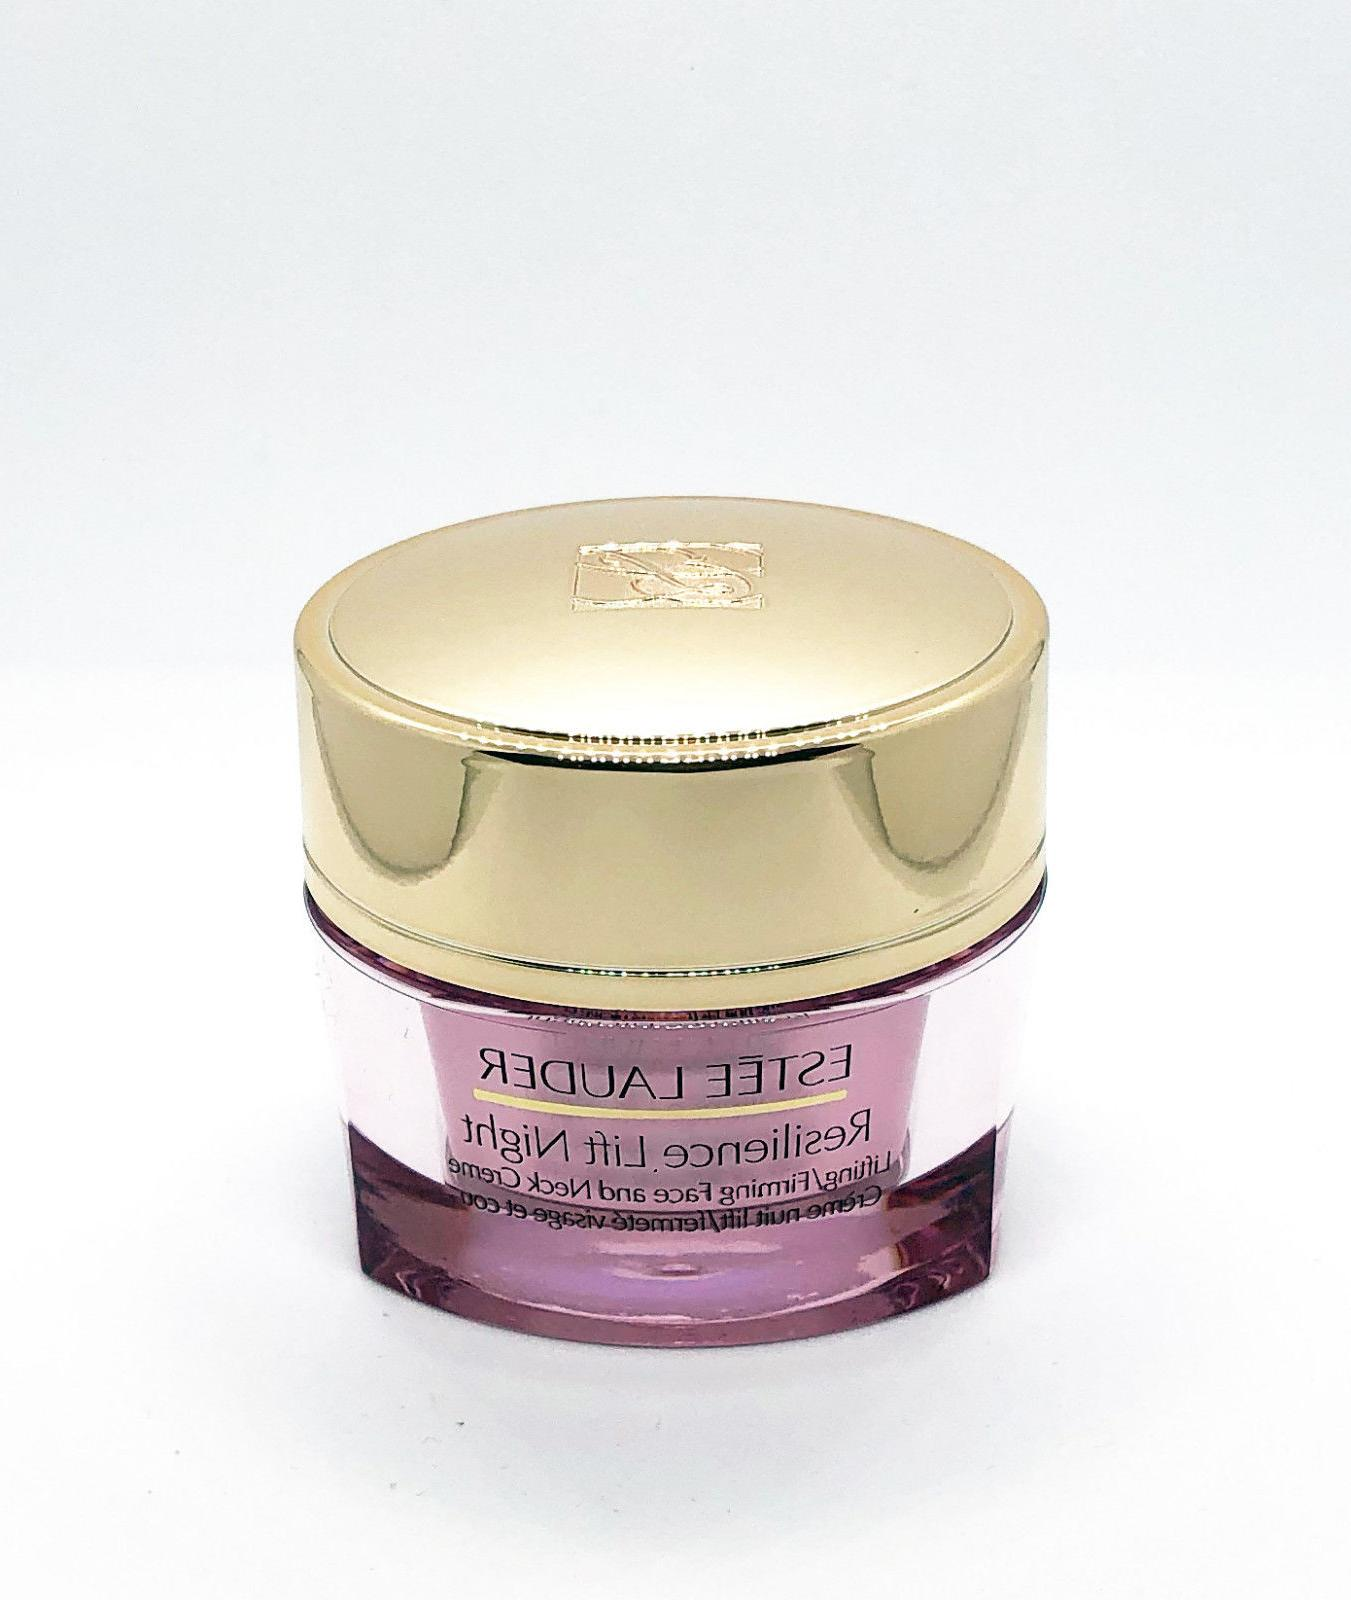 estee lauder resilience lift night lifting firming